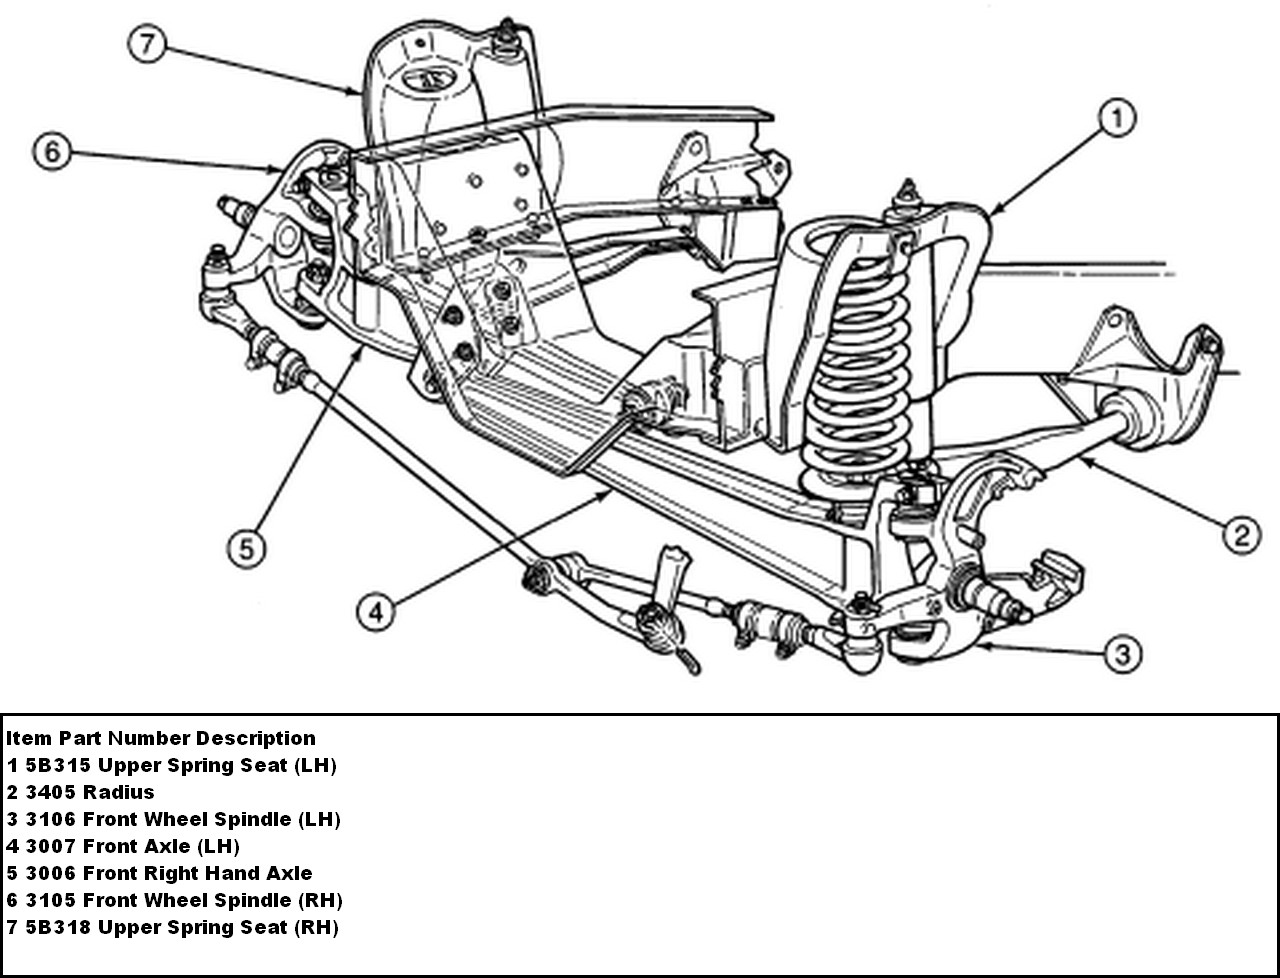 2002 f250 suspension diagram need front wheel alignment data for my 1980 e 250 van  front wheel alignment data for my 1980